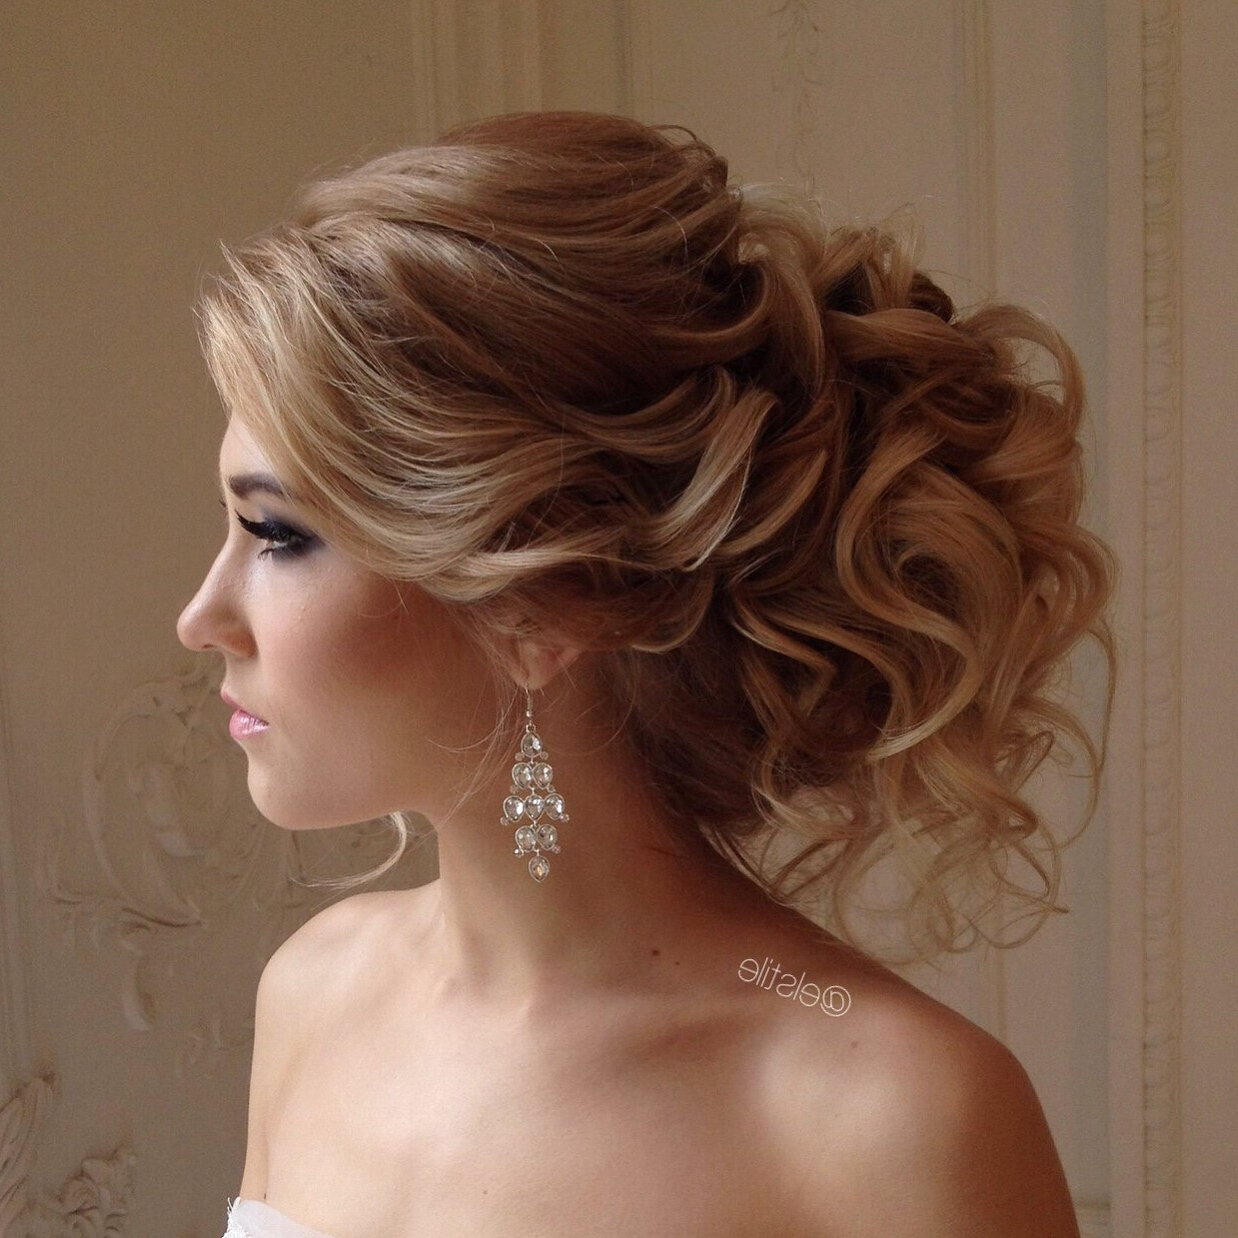 Up Hairstyles For Wedding Outstanding Hair Updos Weddings Diy Pin For Well Known Put Up Wedding Hairstyles (View 5 of 15)